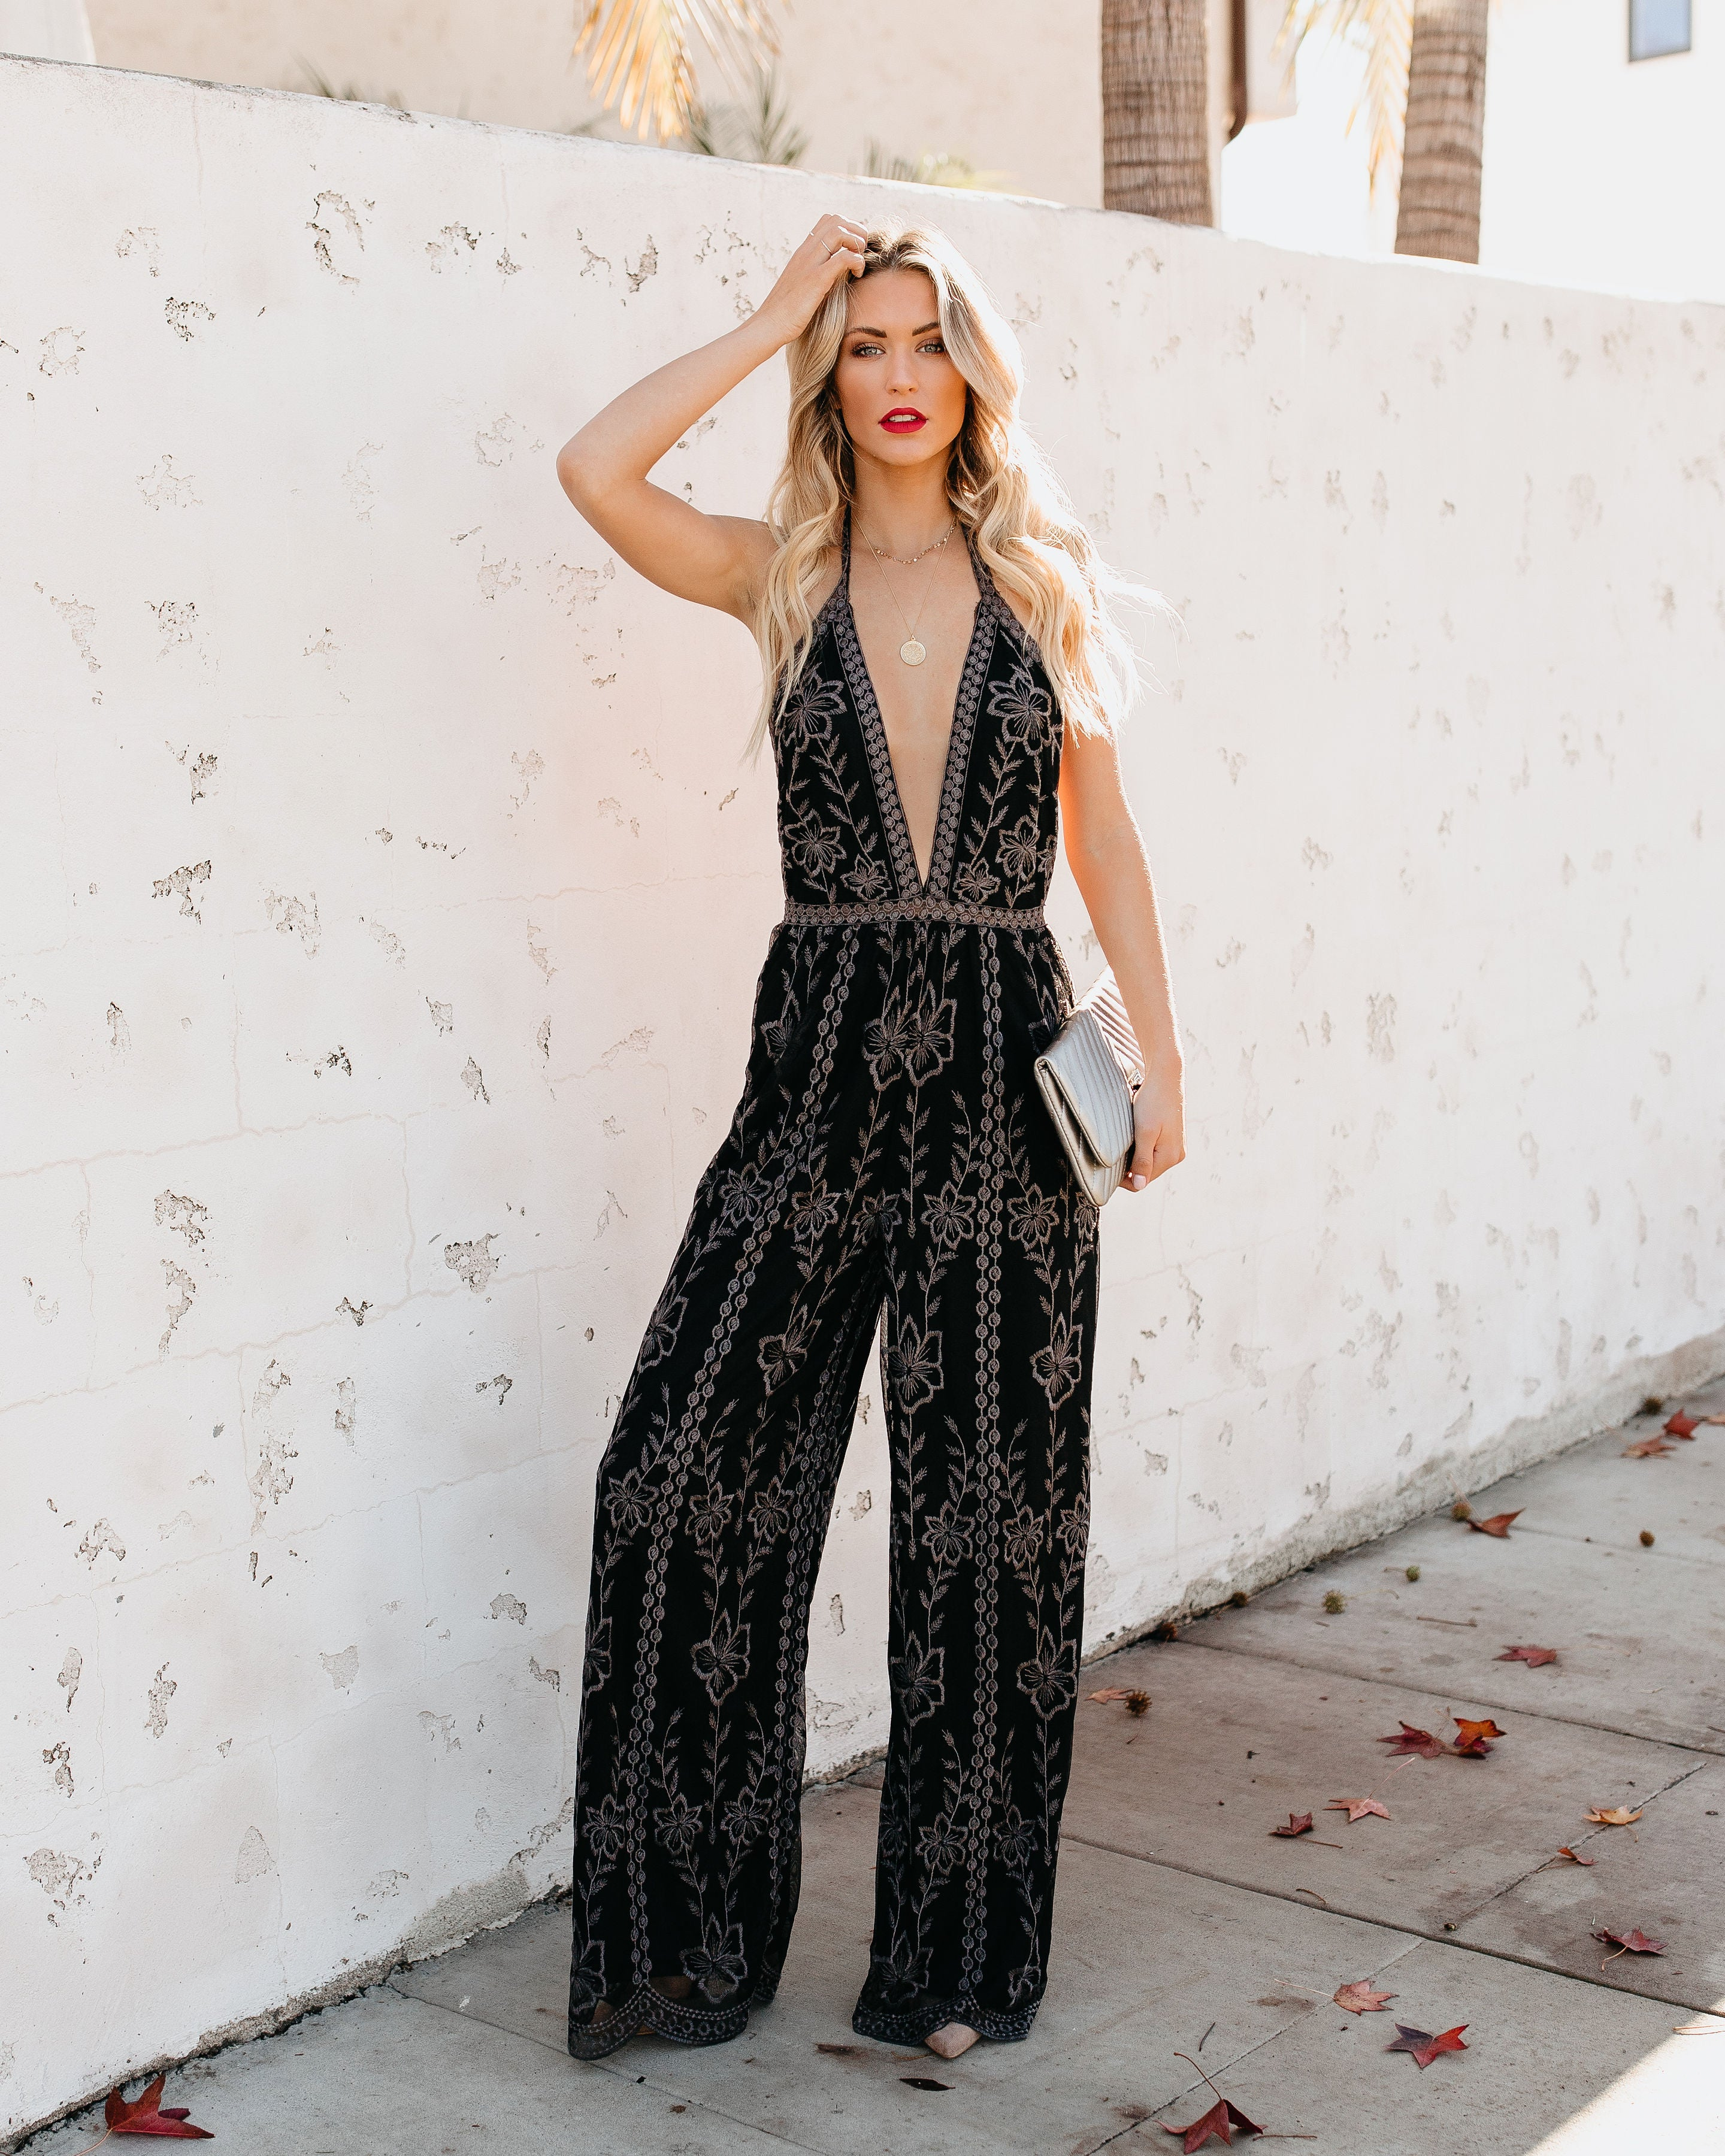 664c0809dce8 Detail Product. ← Home - EXTRA SMALL - Lovato Embroidered Lace Halter  Jumpsuit